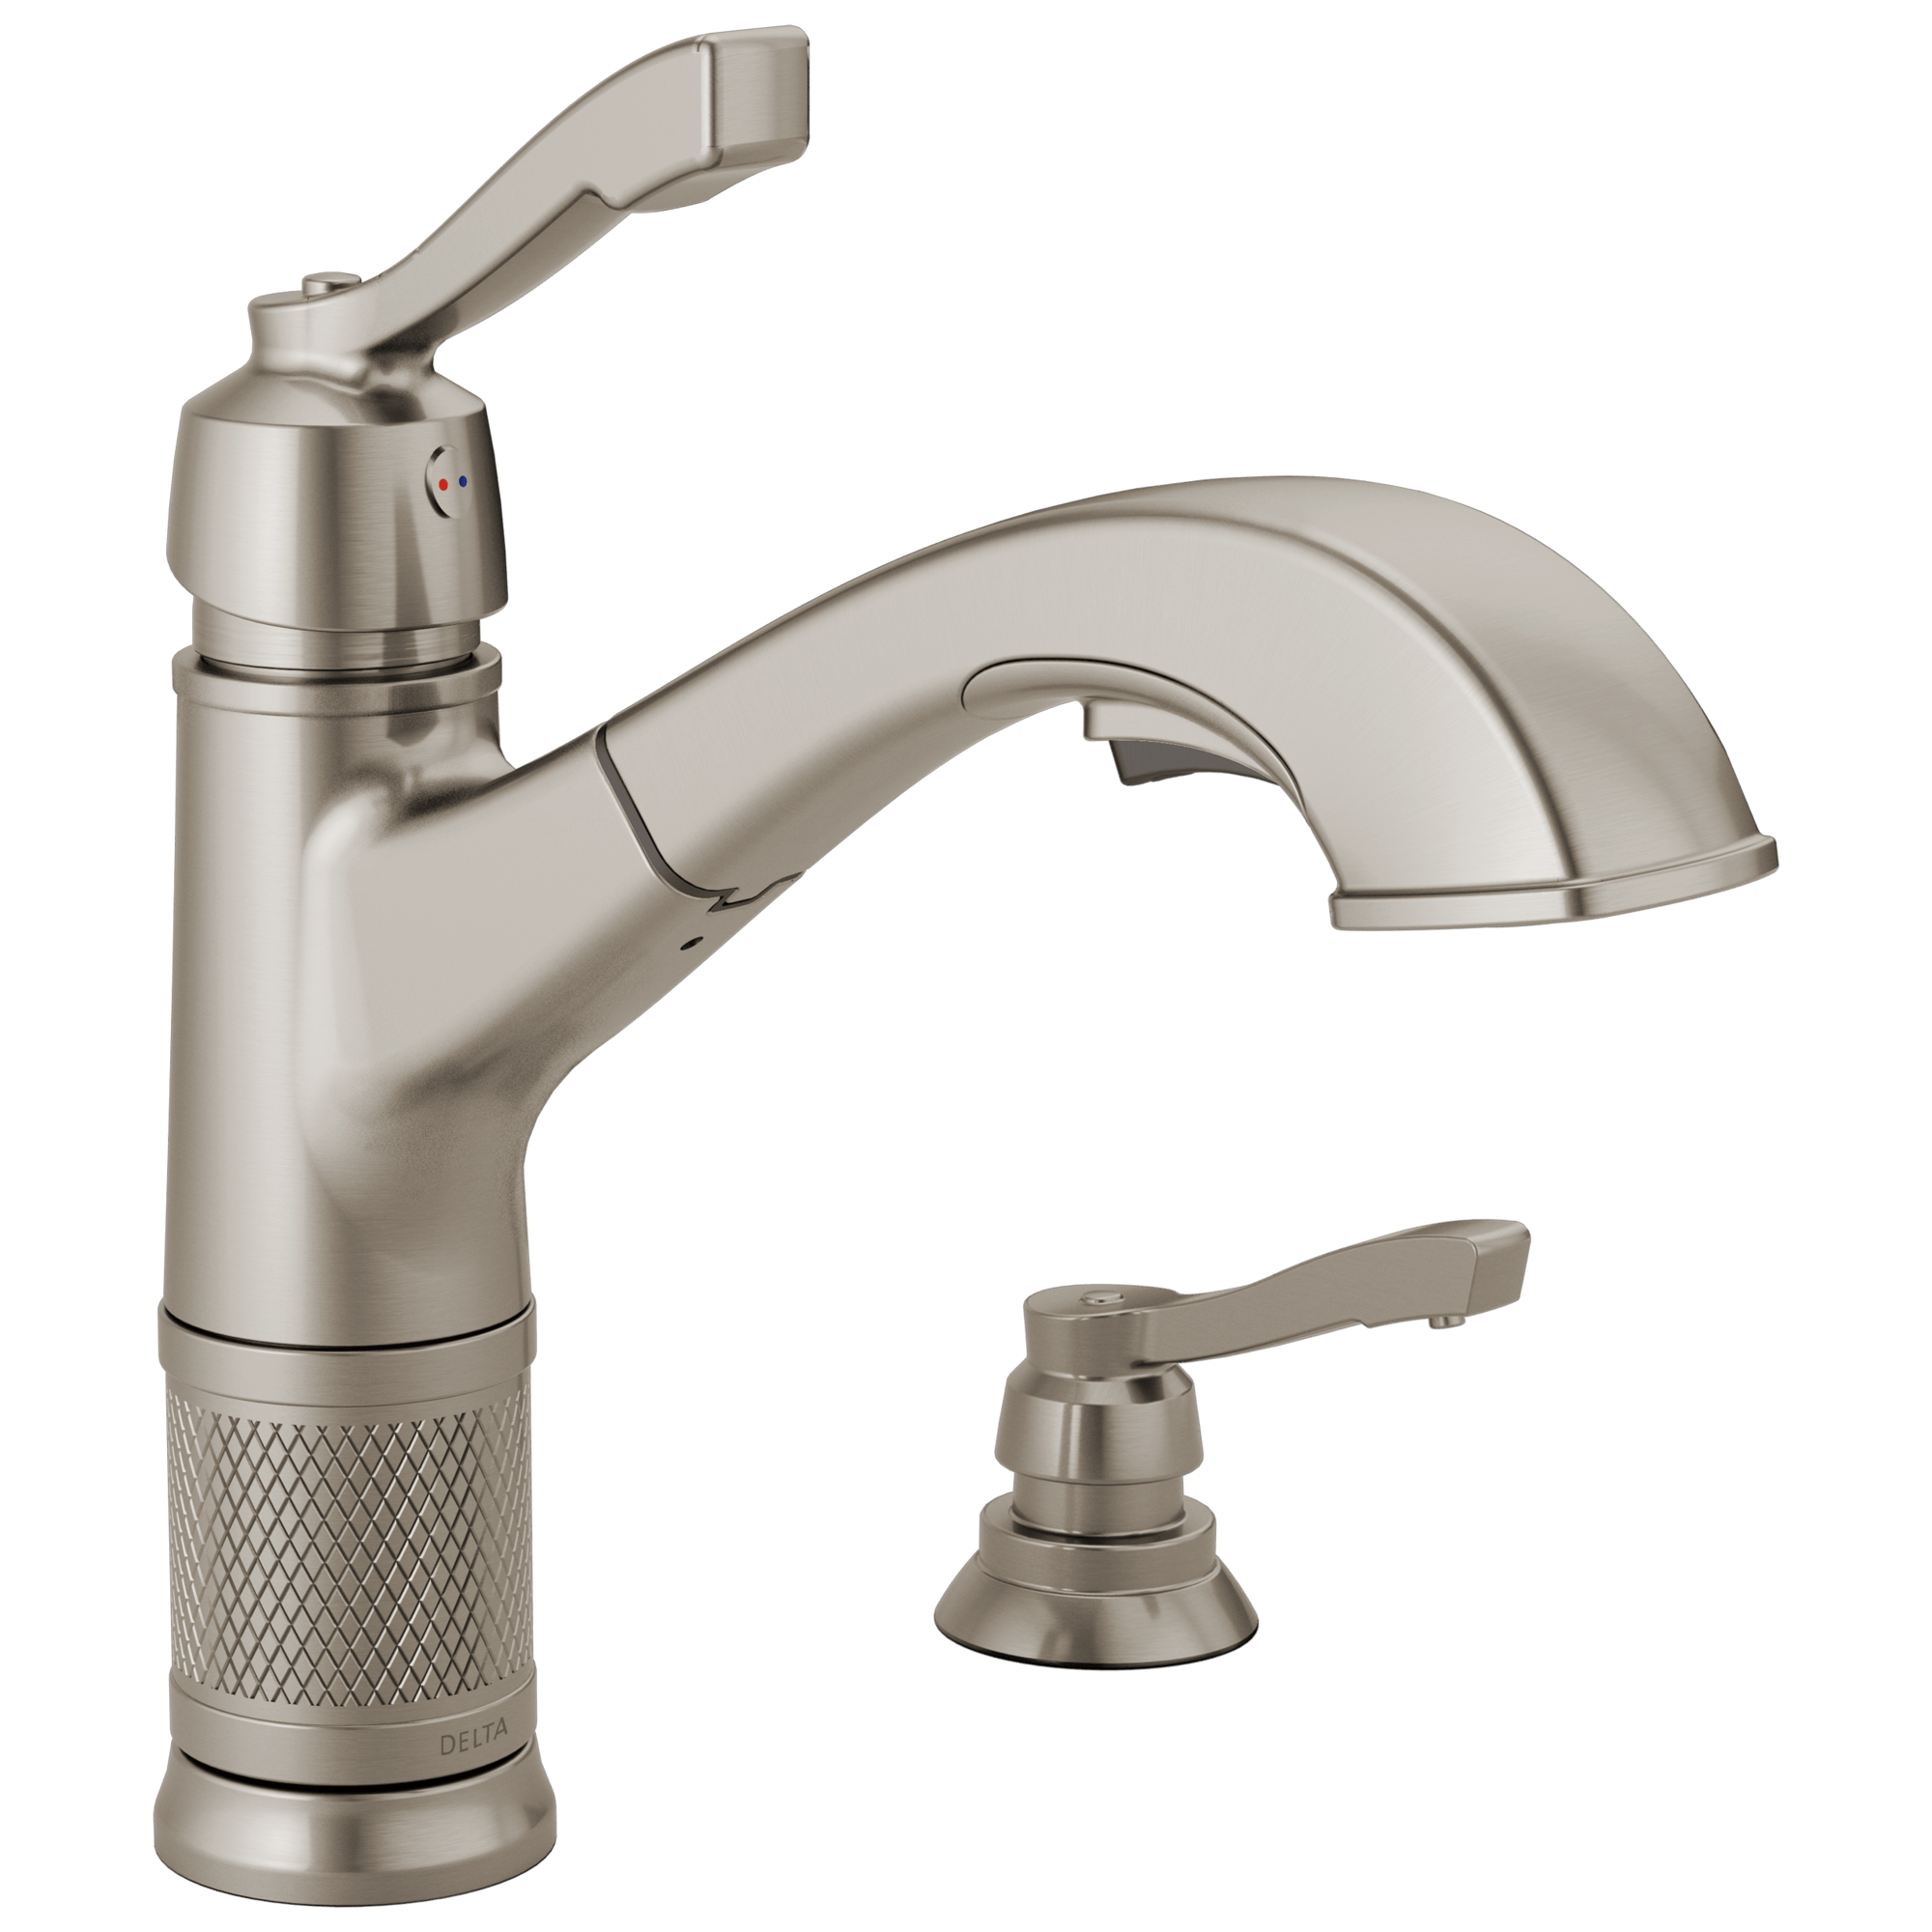 single handle pull out kitchen faucet with soap dispenser